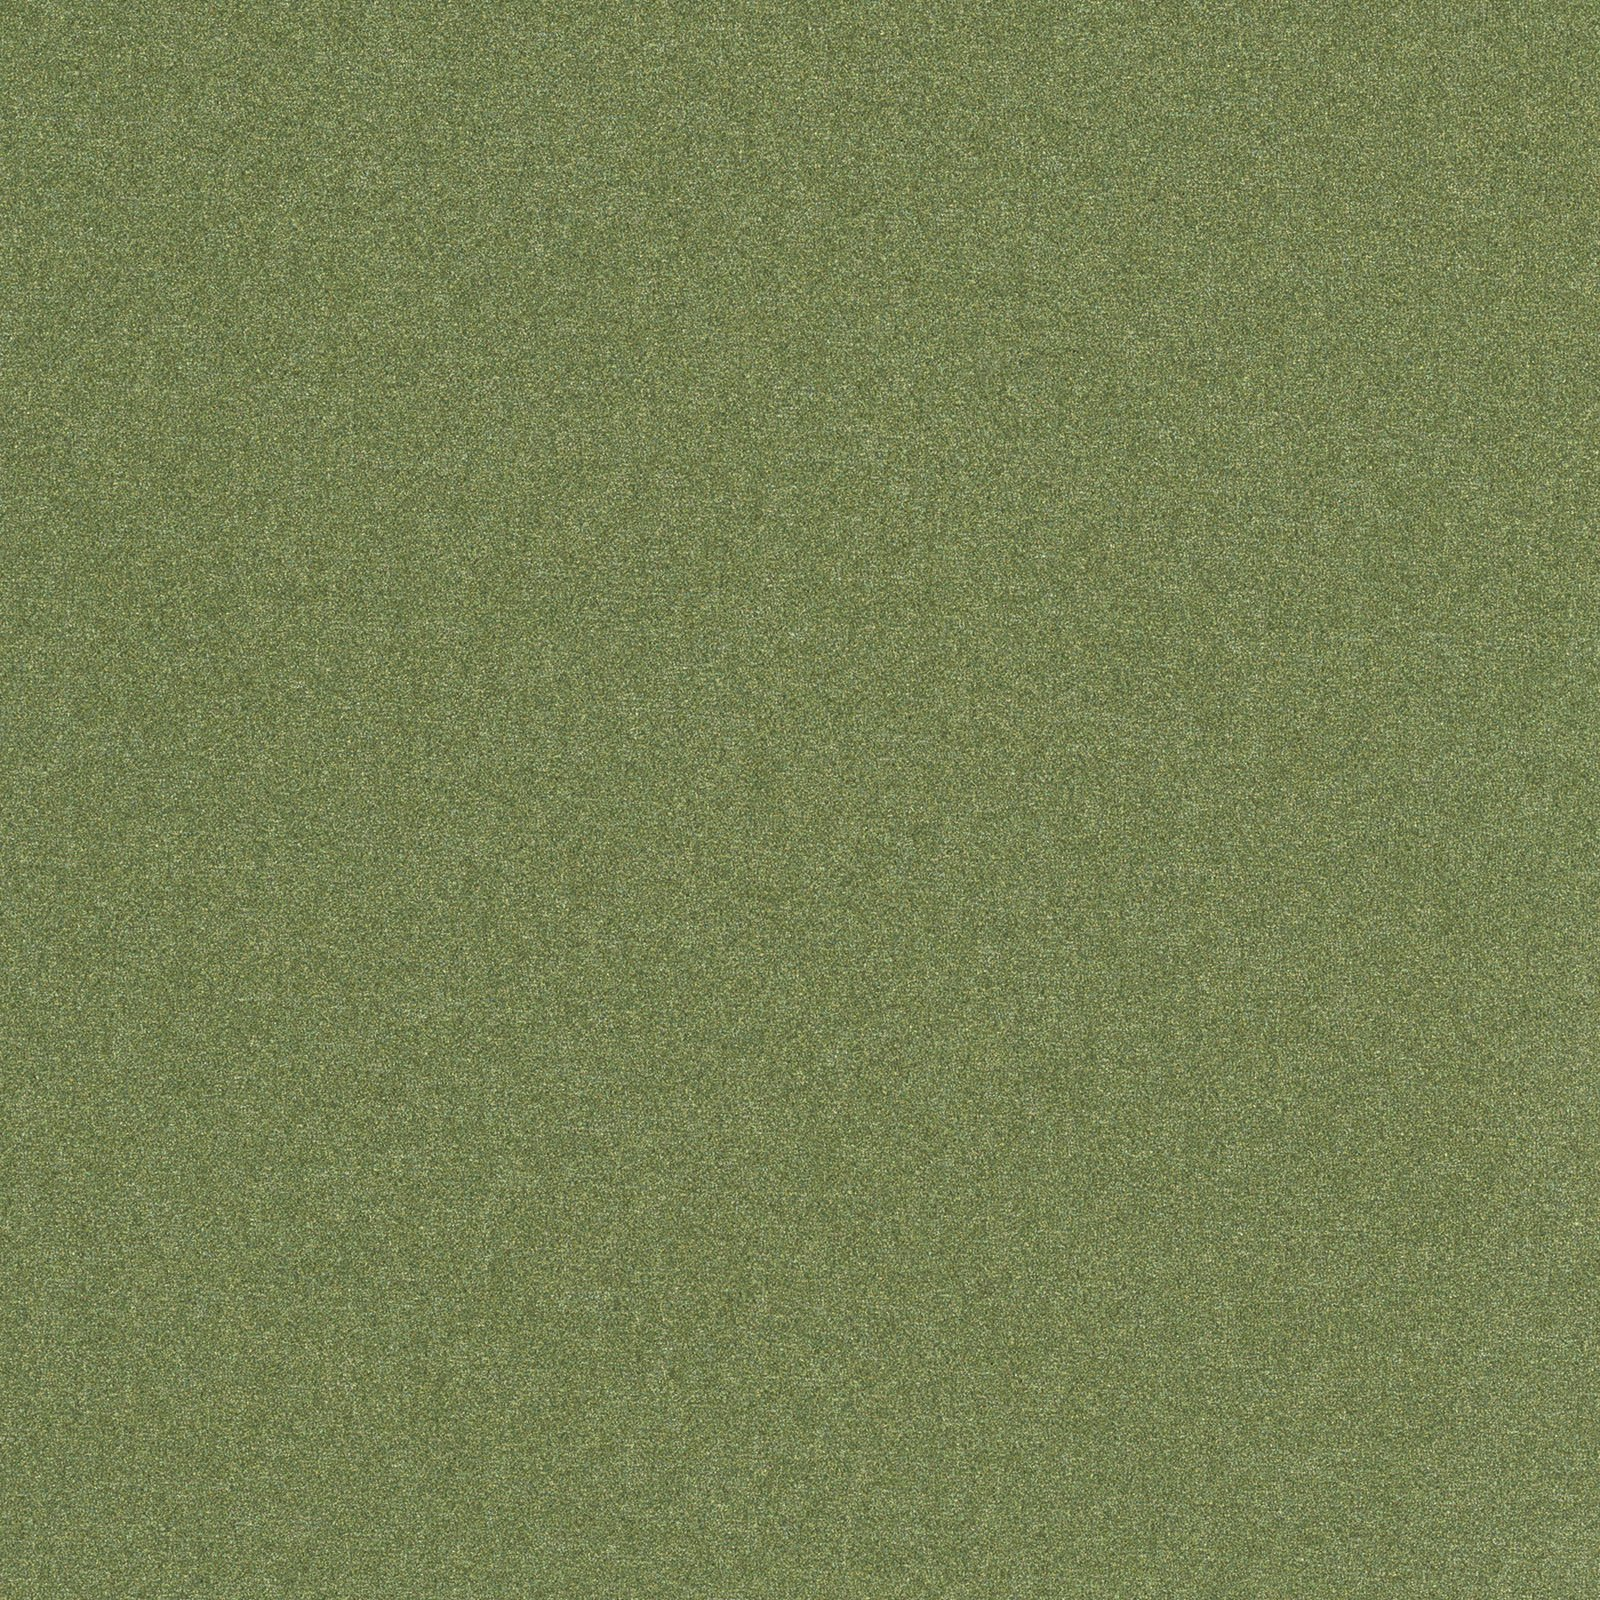 EESC-M1000 G  - STARLIGHT METALLICS BY MAYWOOD STUDIO EMERALD - AVAILABLE TO ORDER